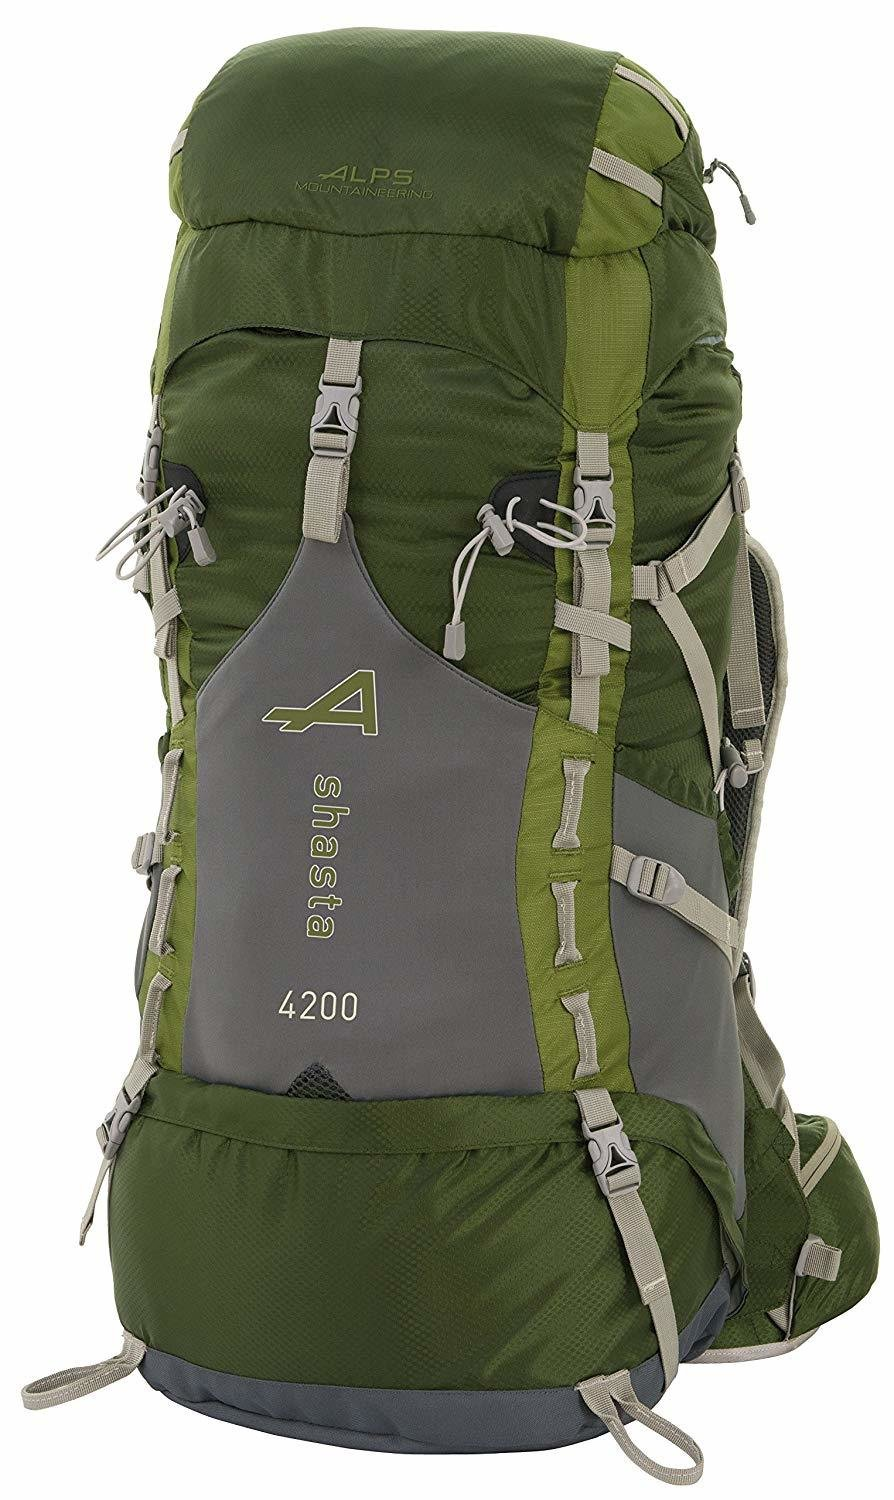 ALPS Mountaineering Shasta 70L Backpack - Adjustable Fit